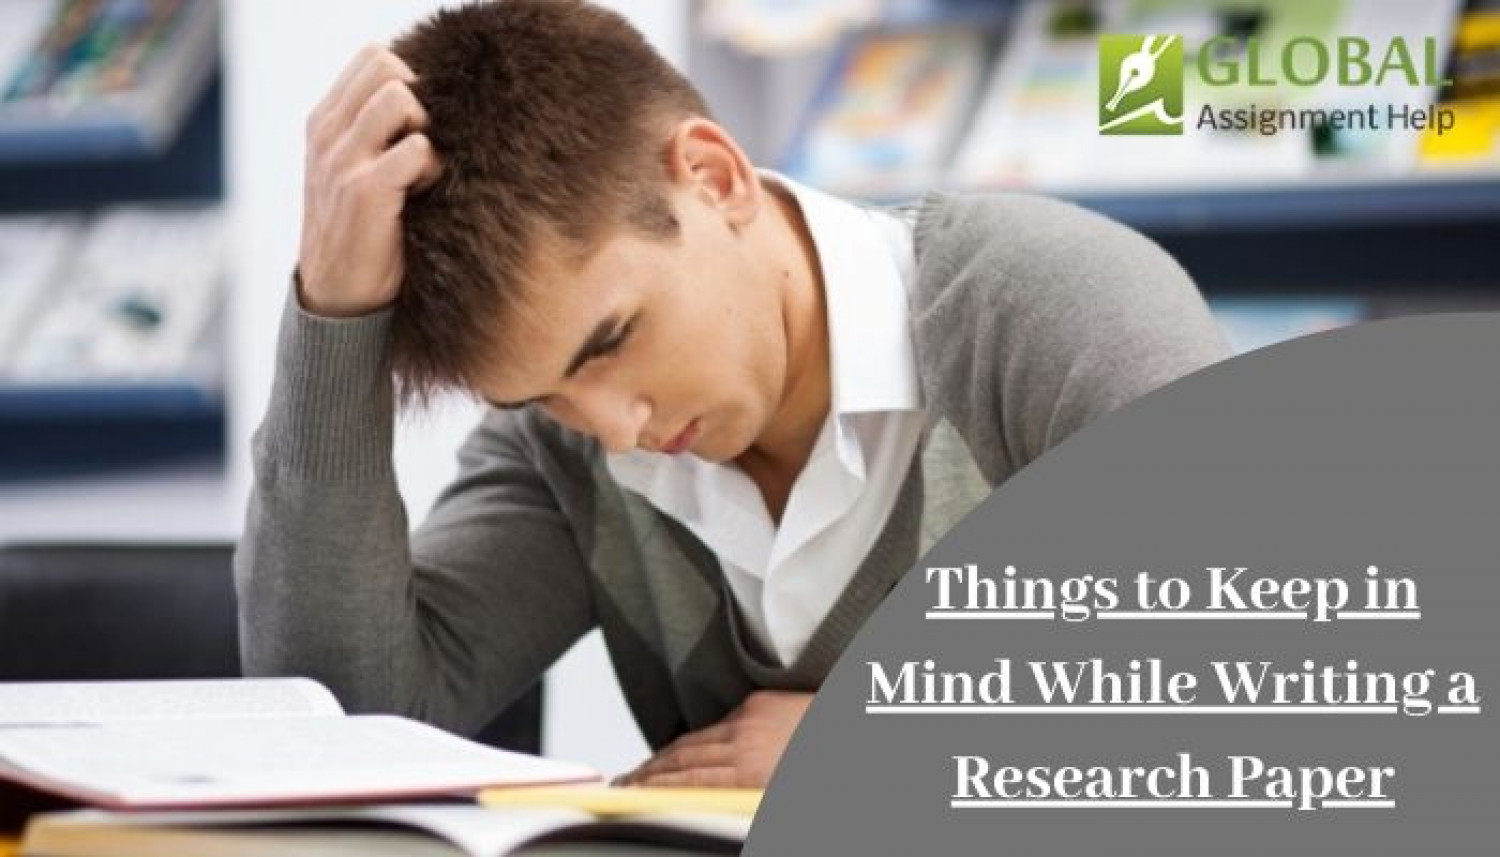 Things to Keep in Mind While Writing a Research Paper Infographic